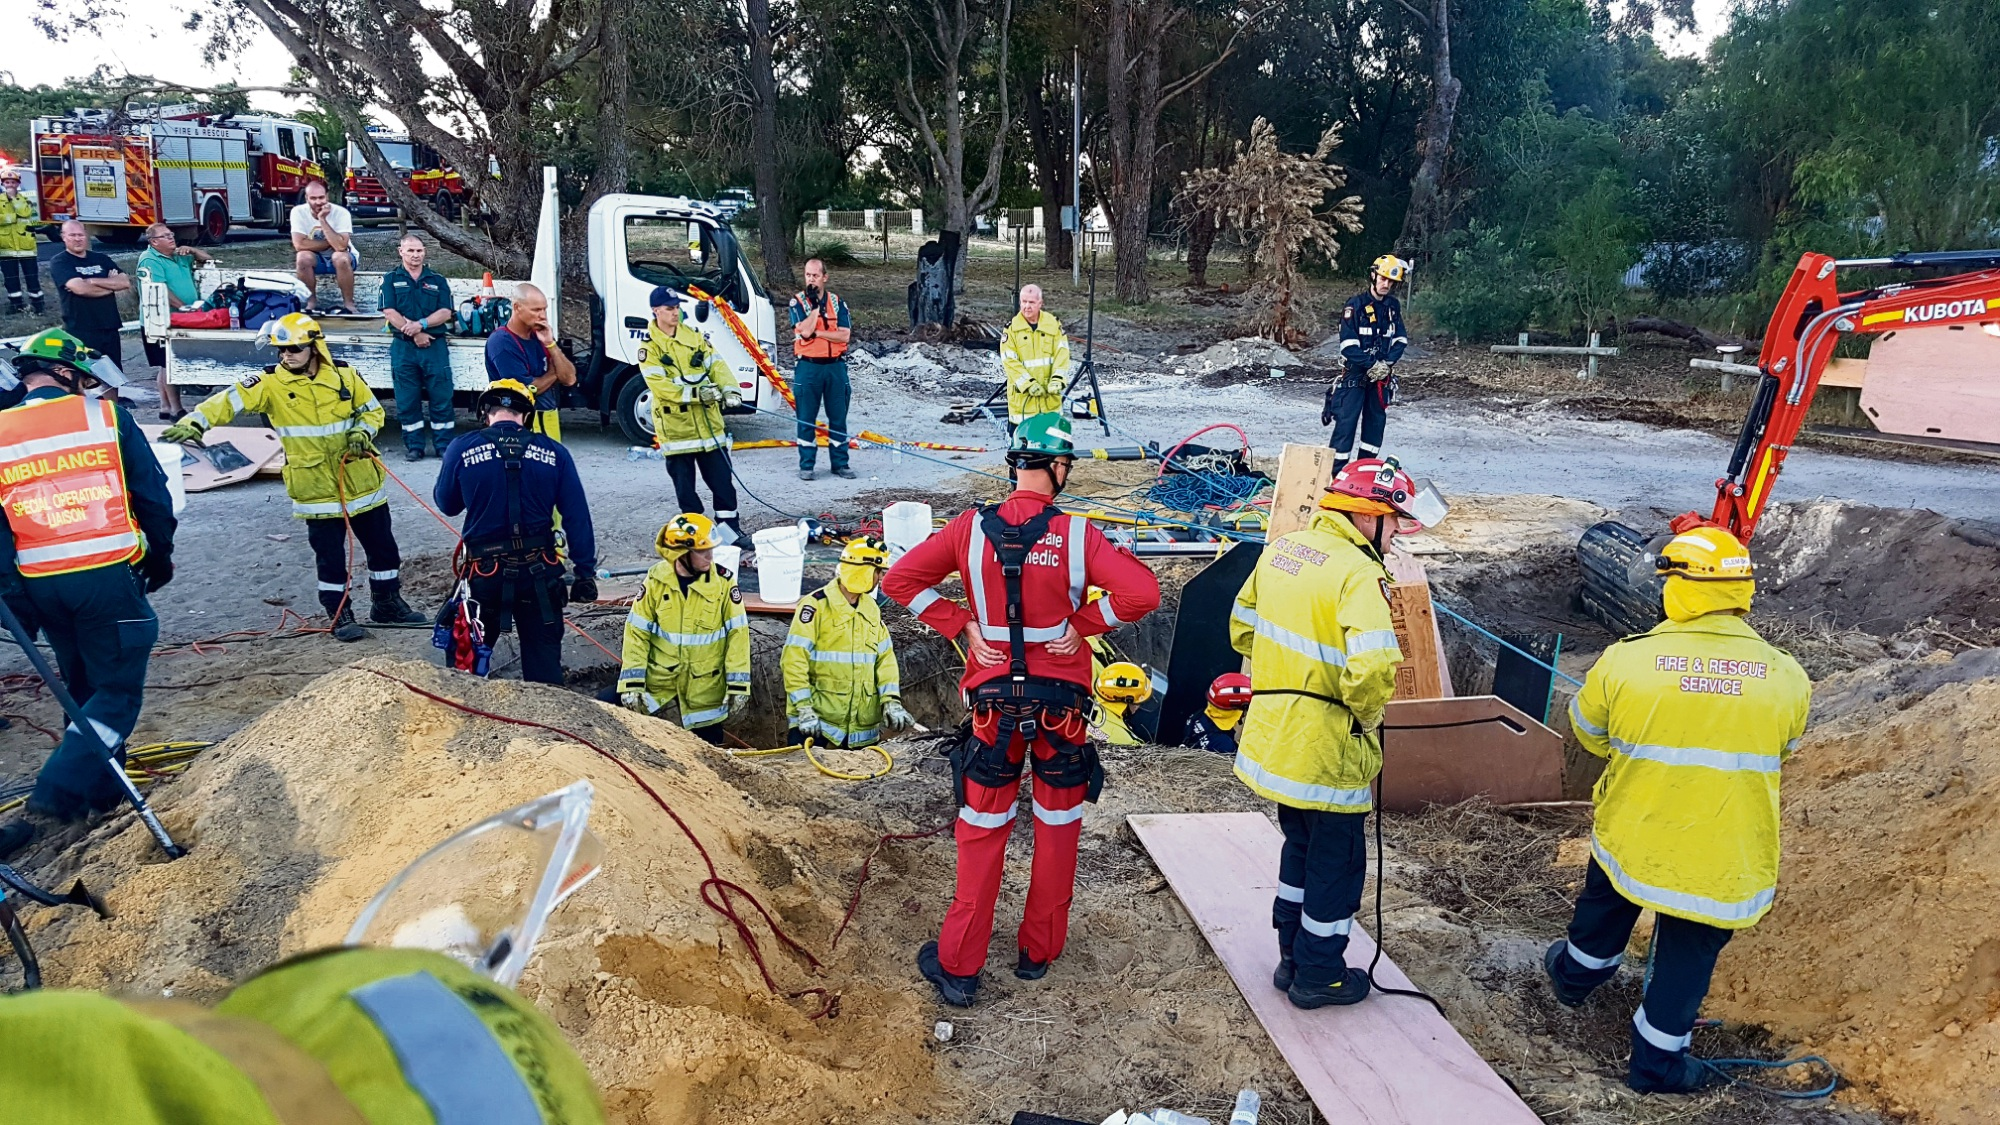 The scene during Sunday's nearly five-hour rescue.